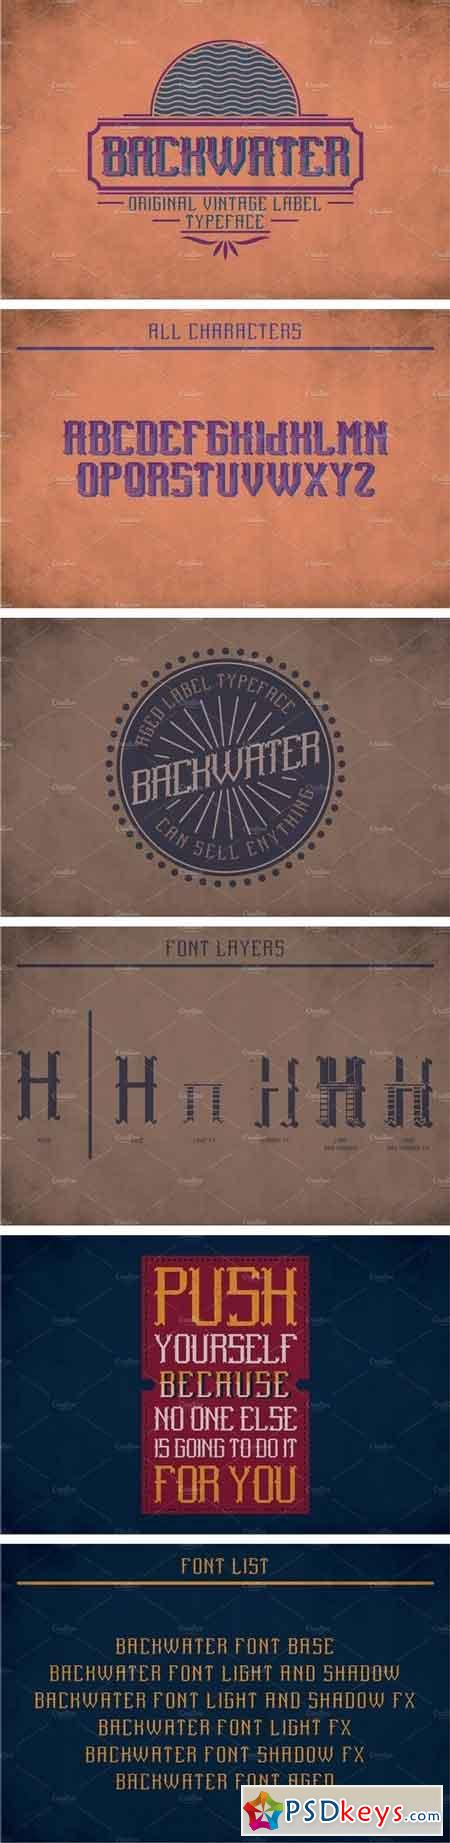 Backwater Vintage Label Typeface 2091497